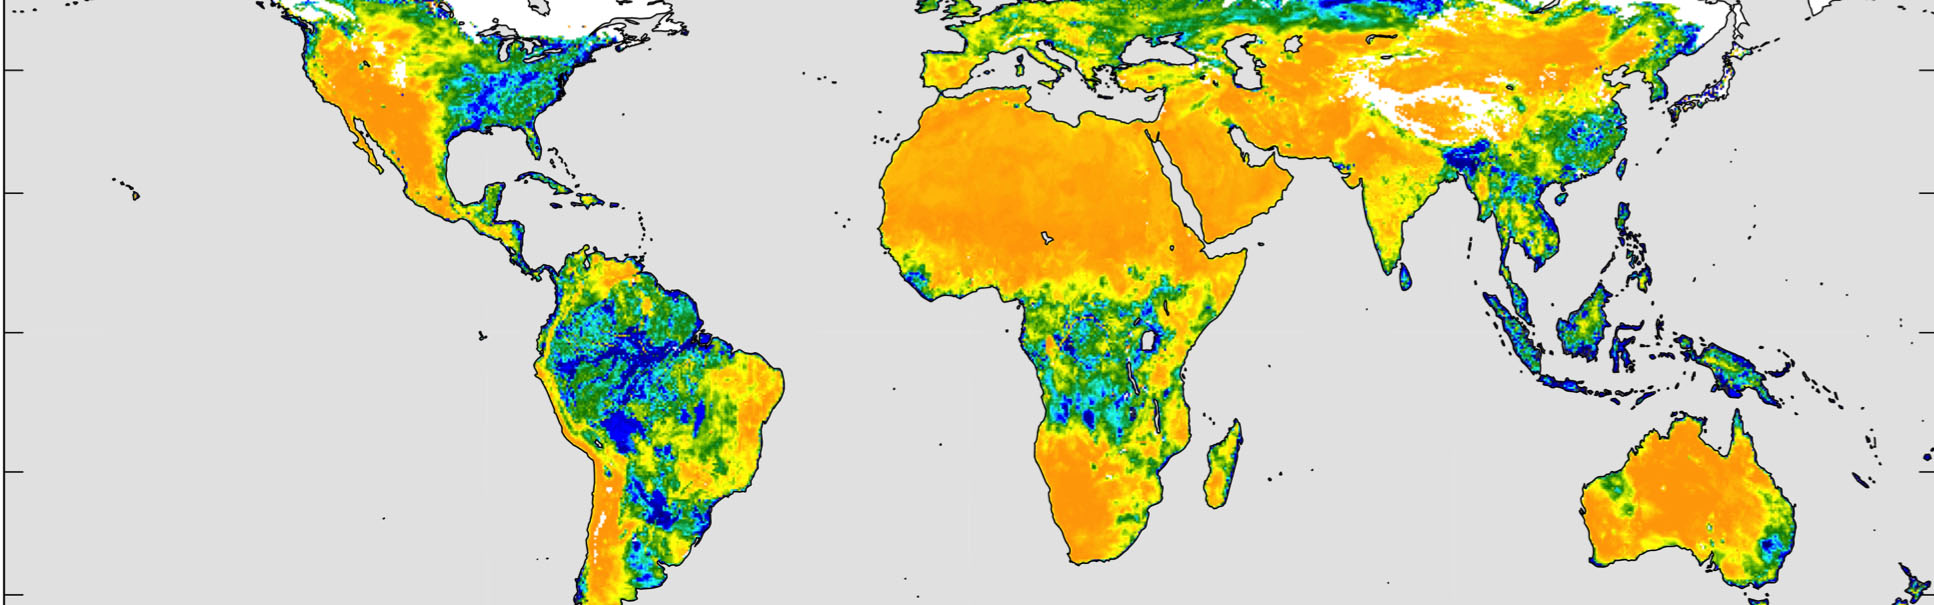 slide 5 - Maps of global soil moisture were created using data from the radiometer on NASA's Soil Moisture Active Passive (SMAP) observatory. Each image is a composite of three days of data, centered on April 15, 18 and 22, 2015.